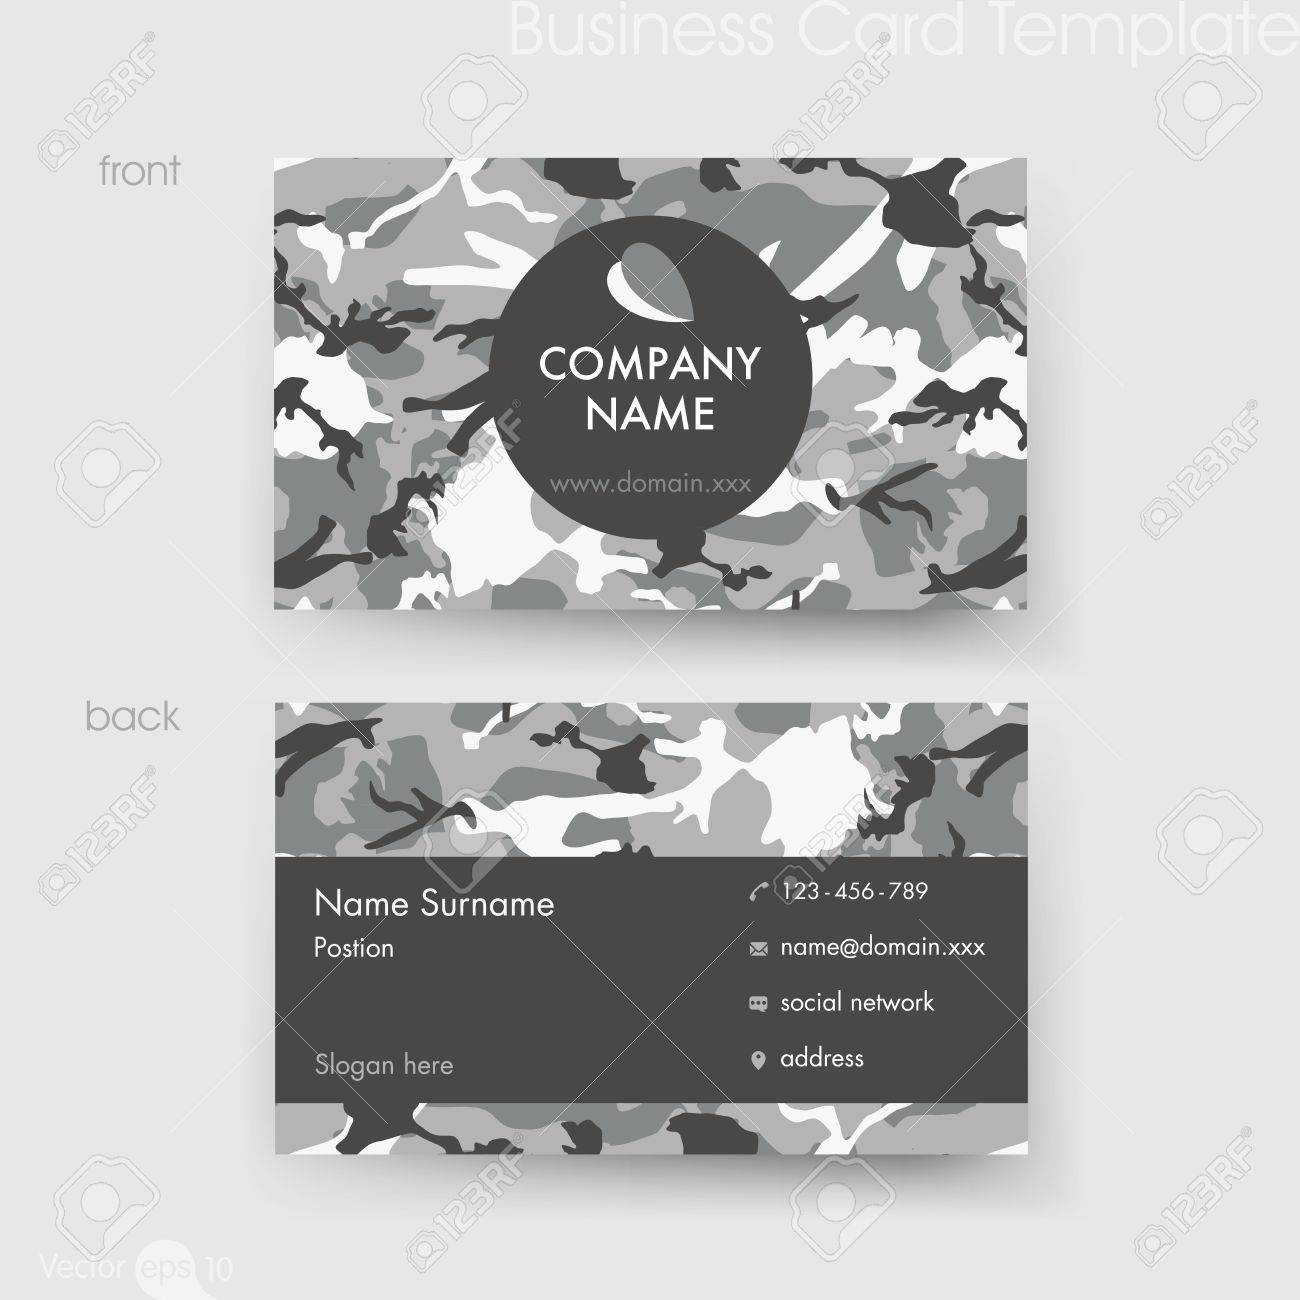 Camouflage pattern business card template royalty free cliparts camouflage pattern business card template stock vector 64659510 colourmoves